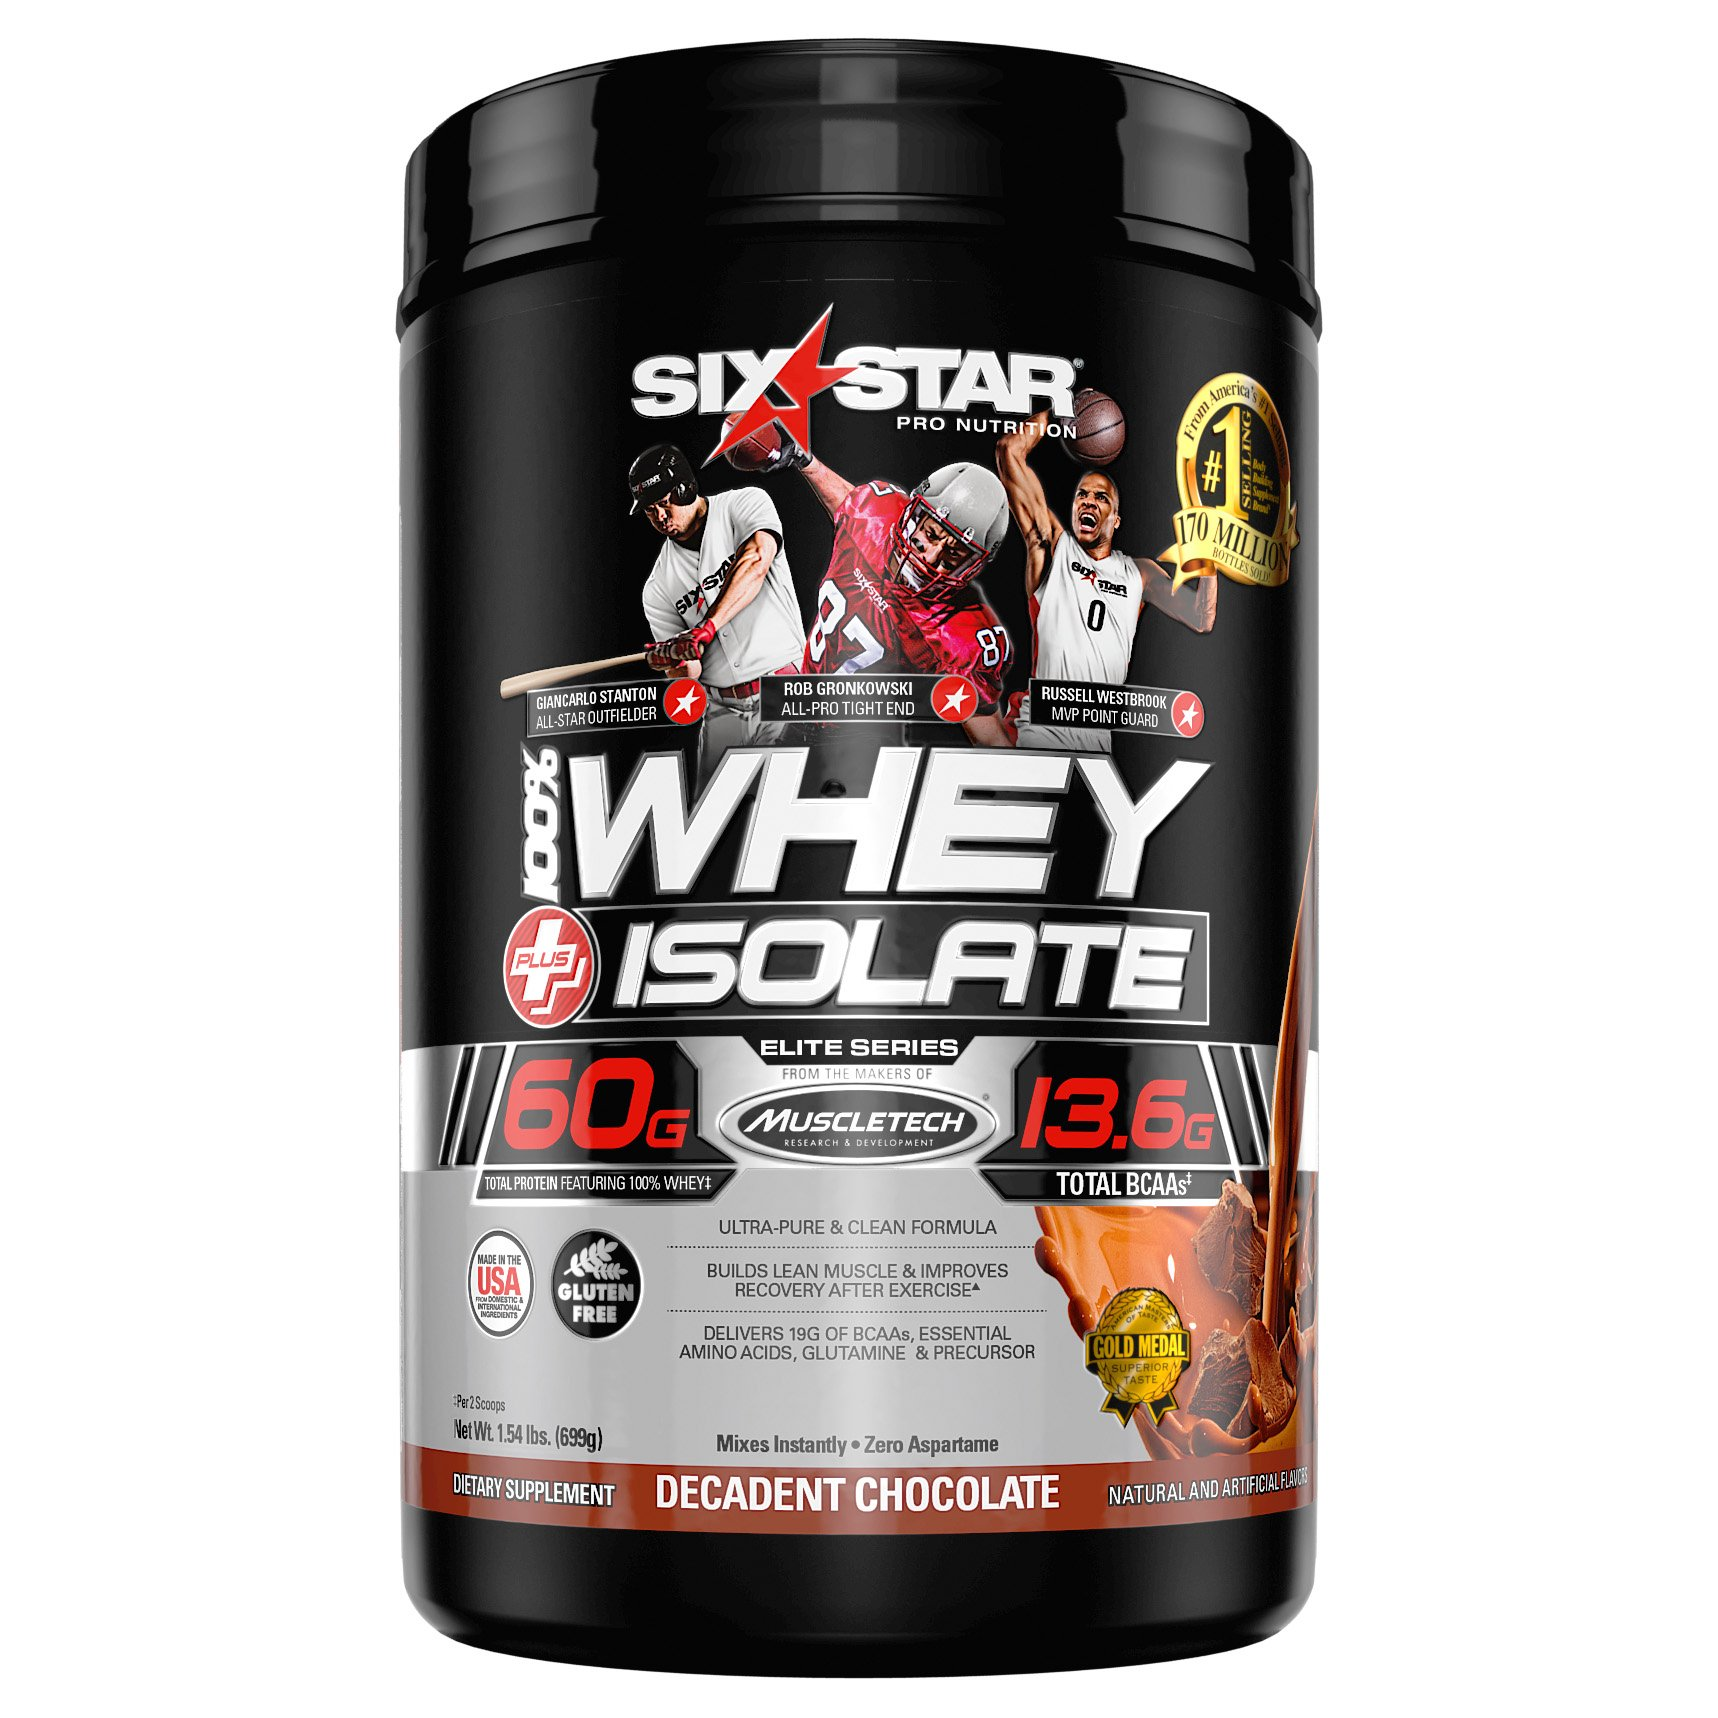 Six Star Whey Isolate Plus Protein Powder, 100% Whey Protein Isolate, Decadent Chocolate, 1.5 Pounds by Six Star